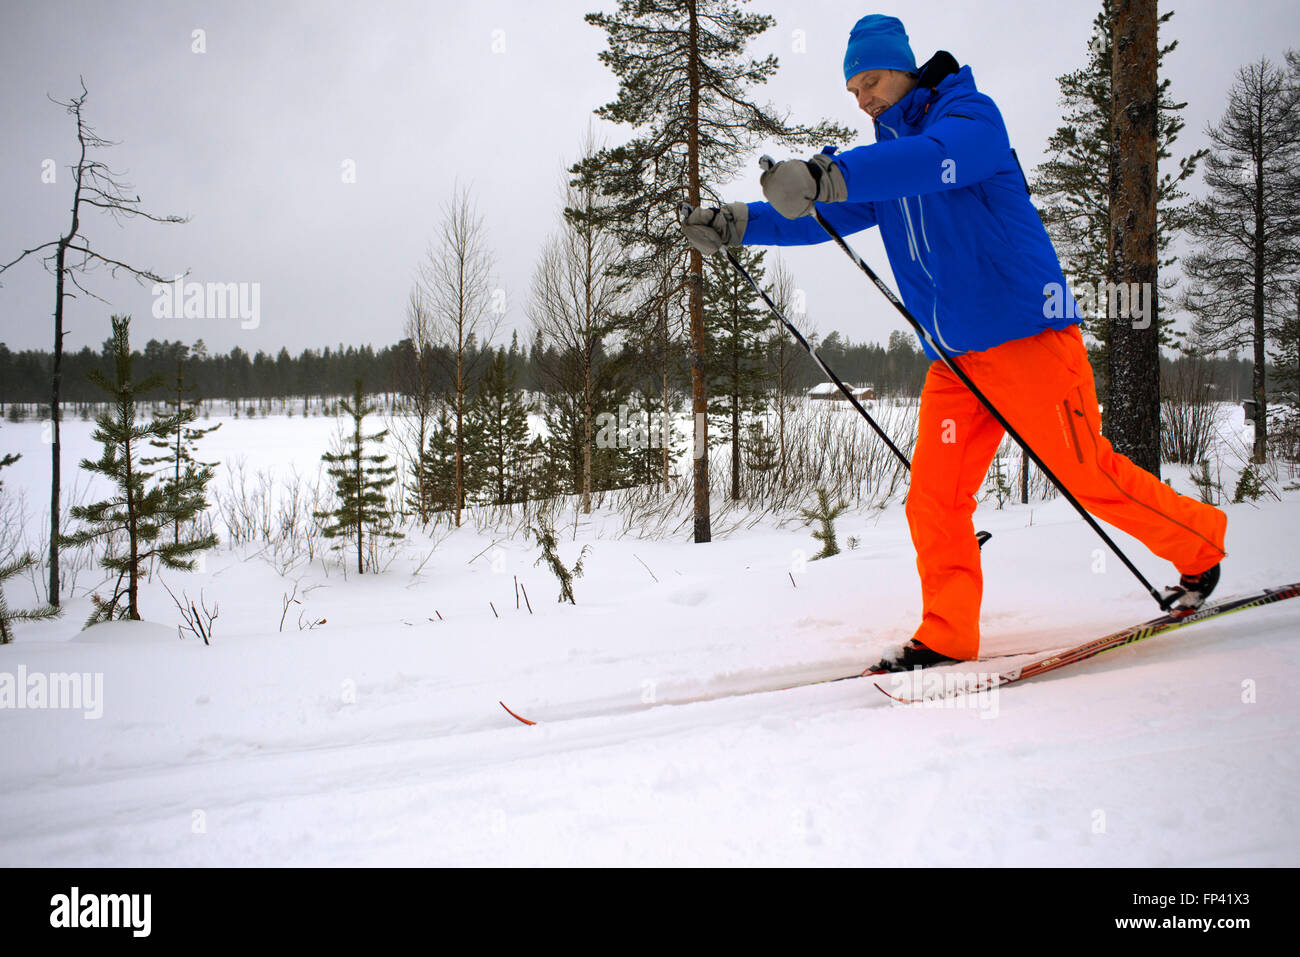 Salla ski resort. Cross-country sky. Deep in the wilderness of heavily snow laden coniferous trees and rugged fell - Stock Image